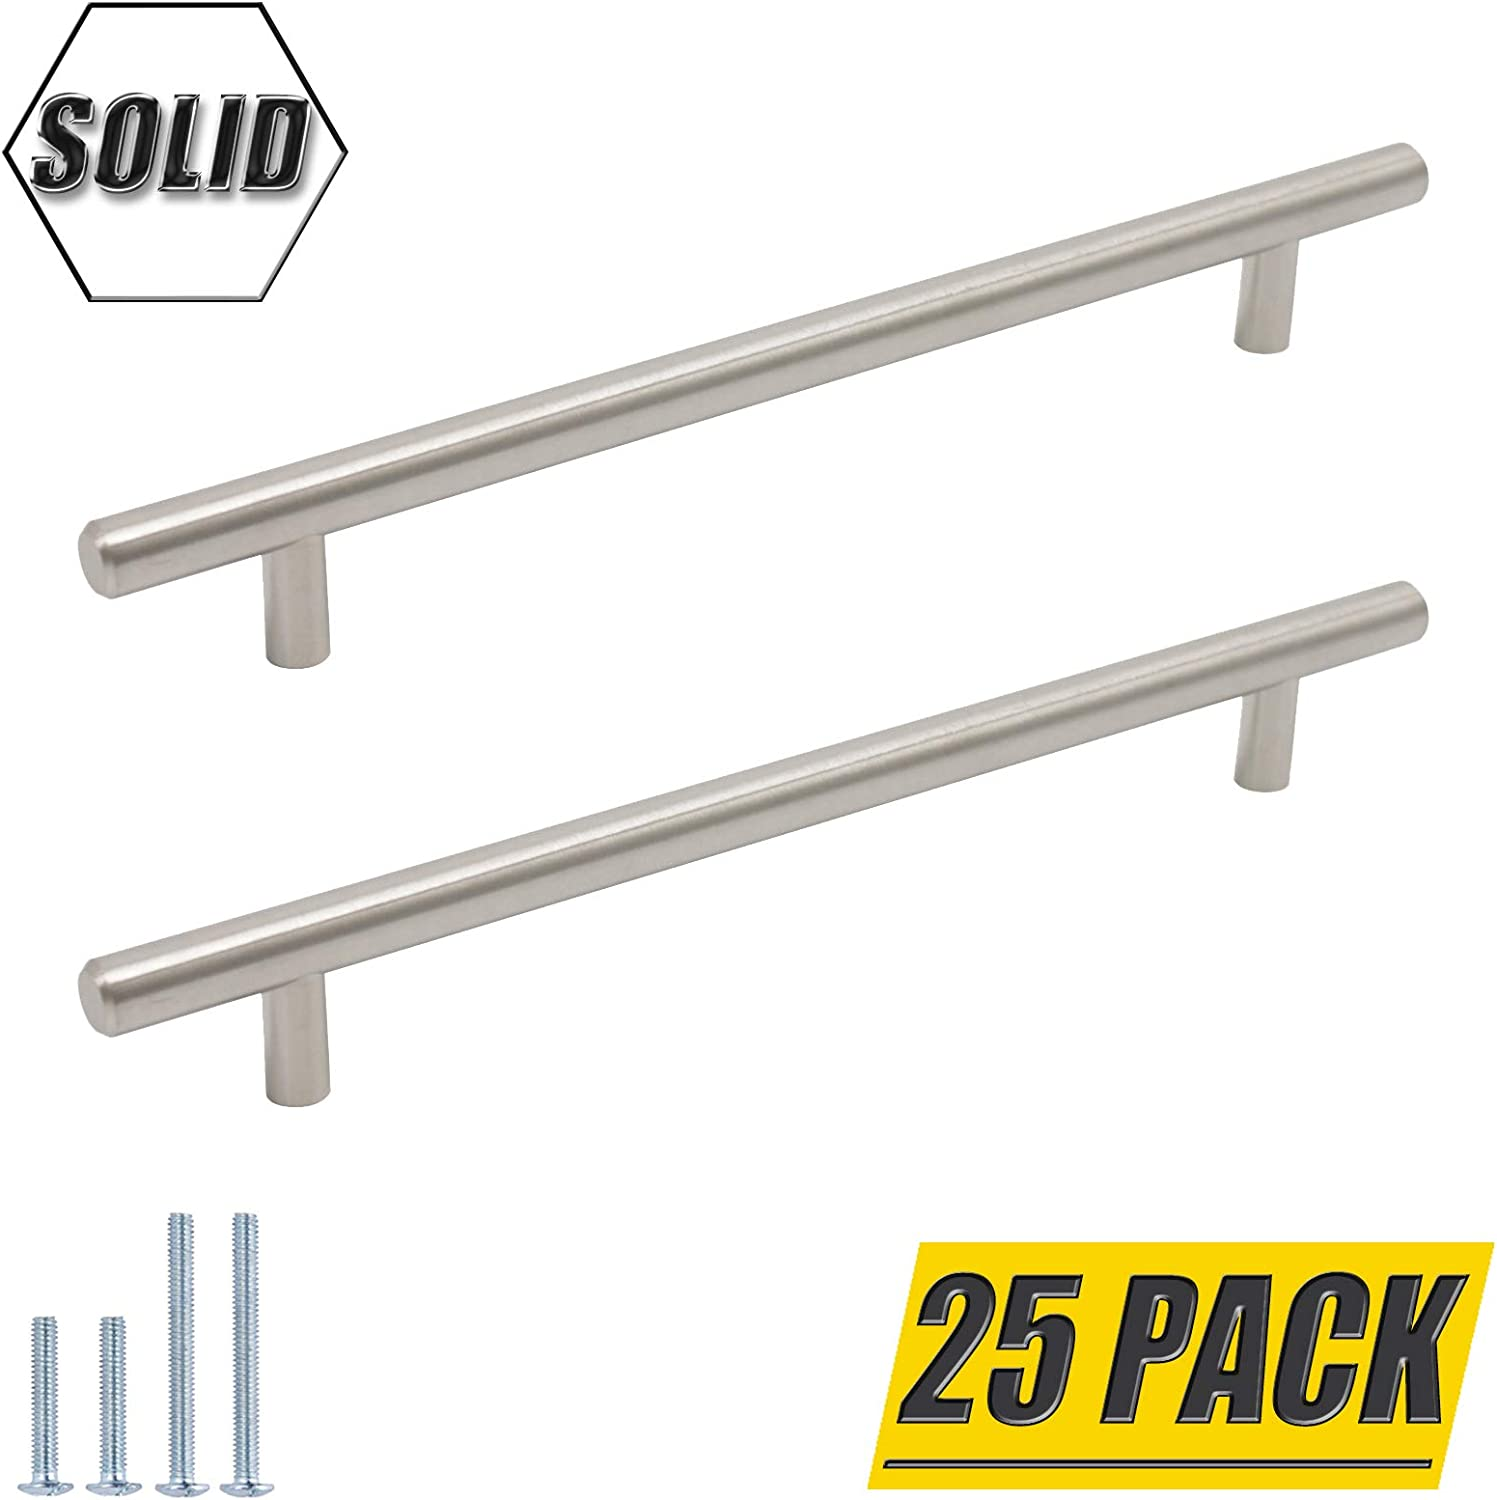 """(25 Pack) Probrico 7-9/16"""" (192Mm) Hole Centers Solid Stainless Steel Brushed Nickel Kitchen Cabinet Pulls Modern Contemporary Euro Round T Leiste Handles Dresser Drawer Cabinet Pulls,10"""" Total Length"""